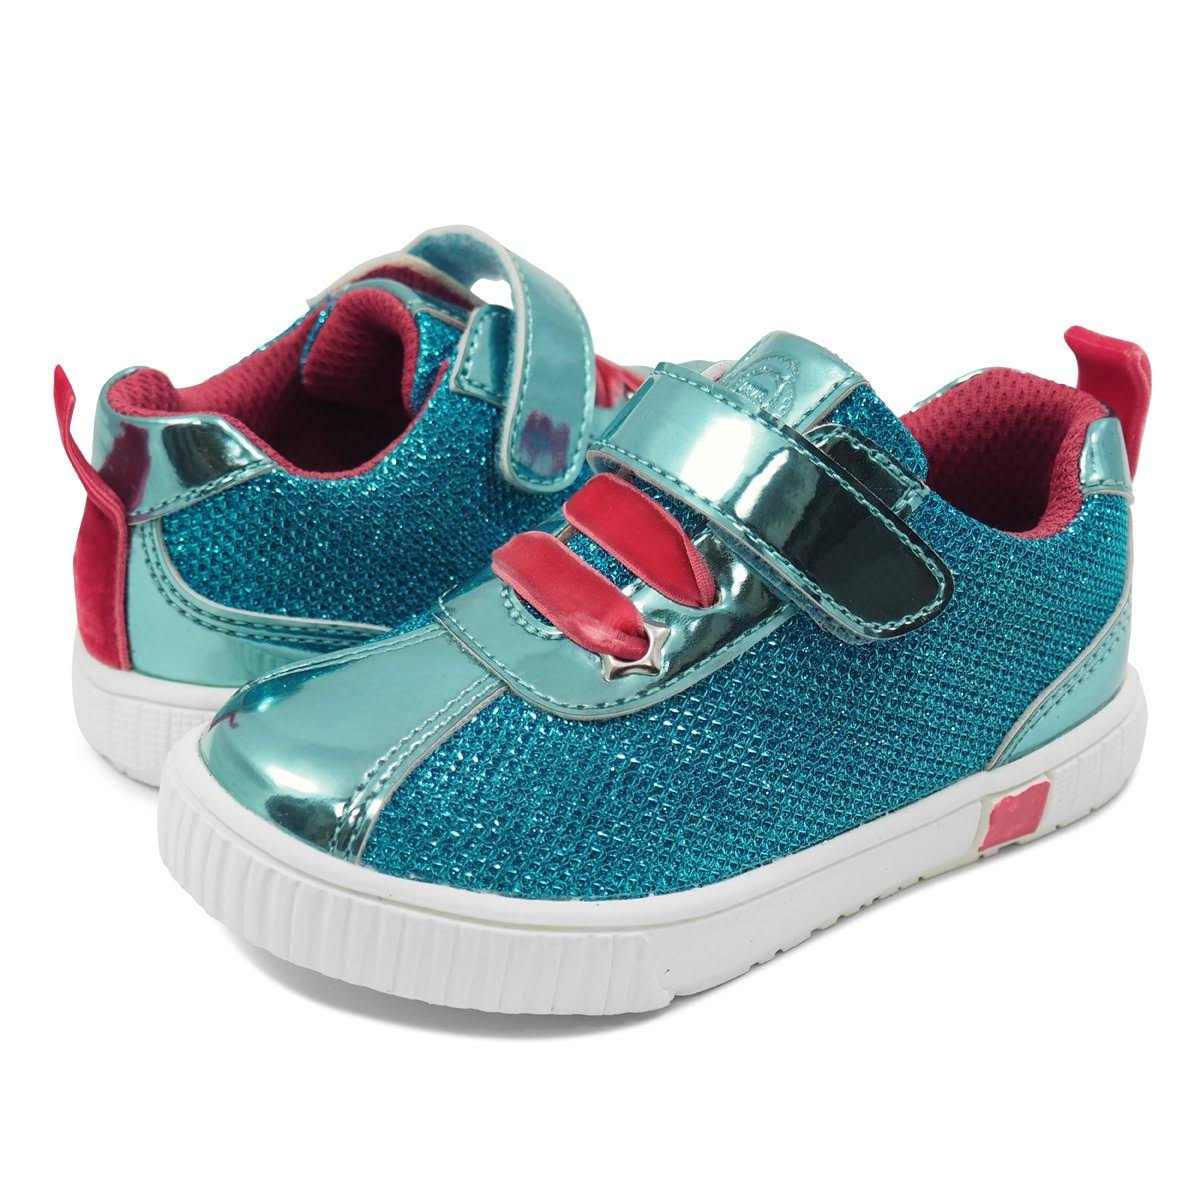 Livie & Luca Girl's Sneaker Aqua Metallic Spin Sneaker Toddler 5